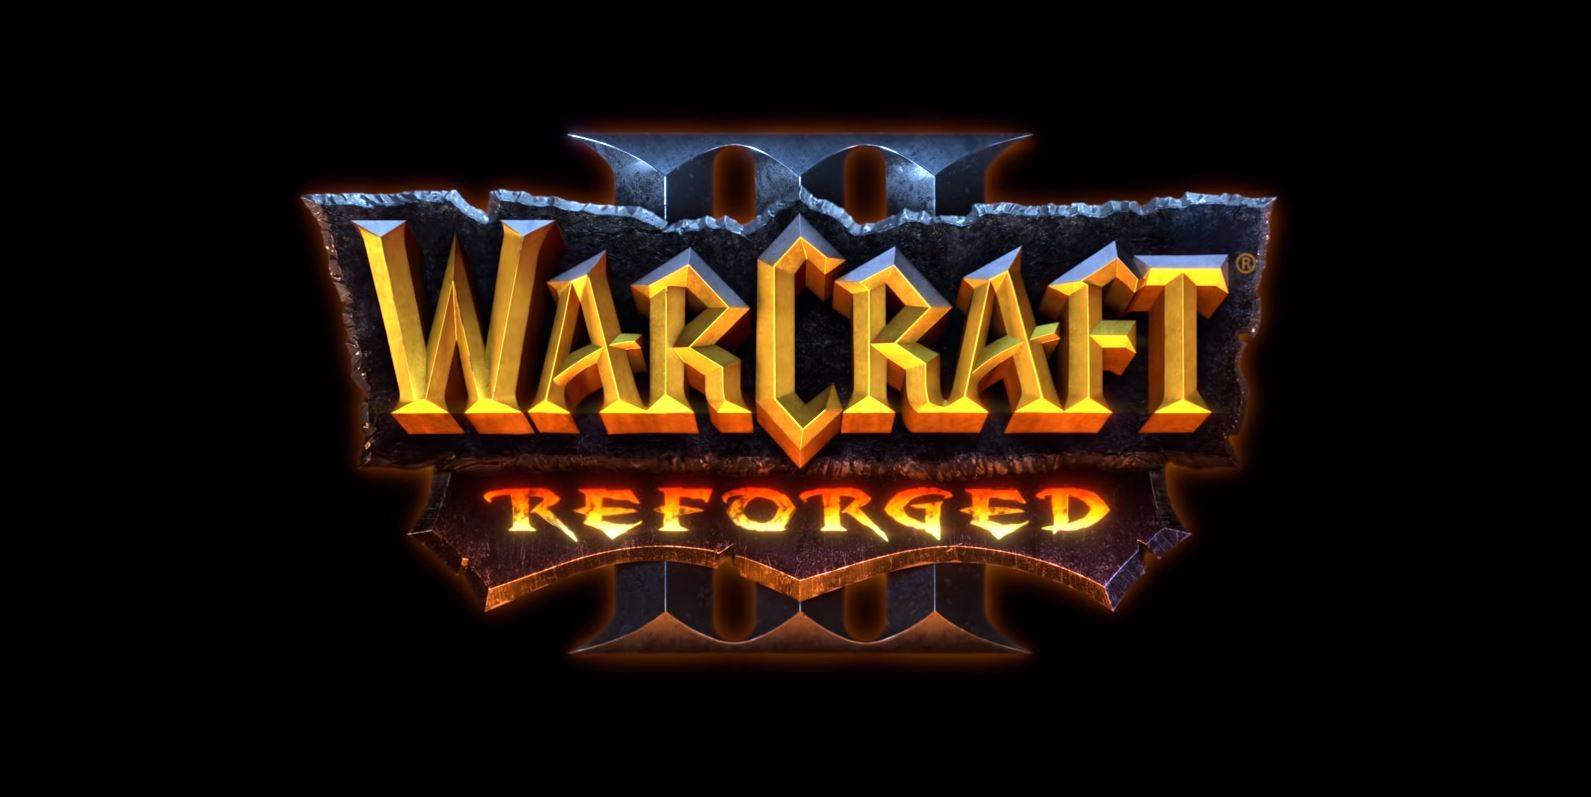 Photo of Warcraft 3: Reforged, compatibil cu originalul in multiplayer